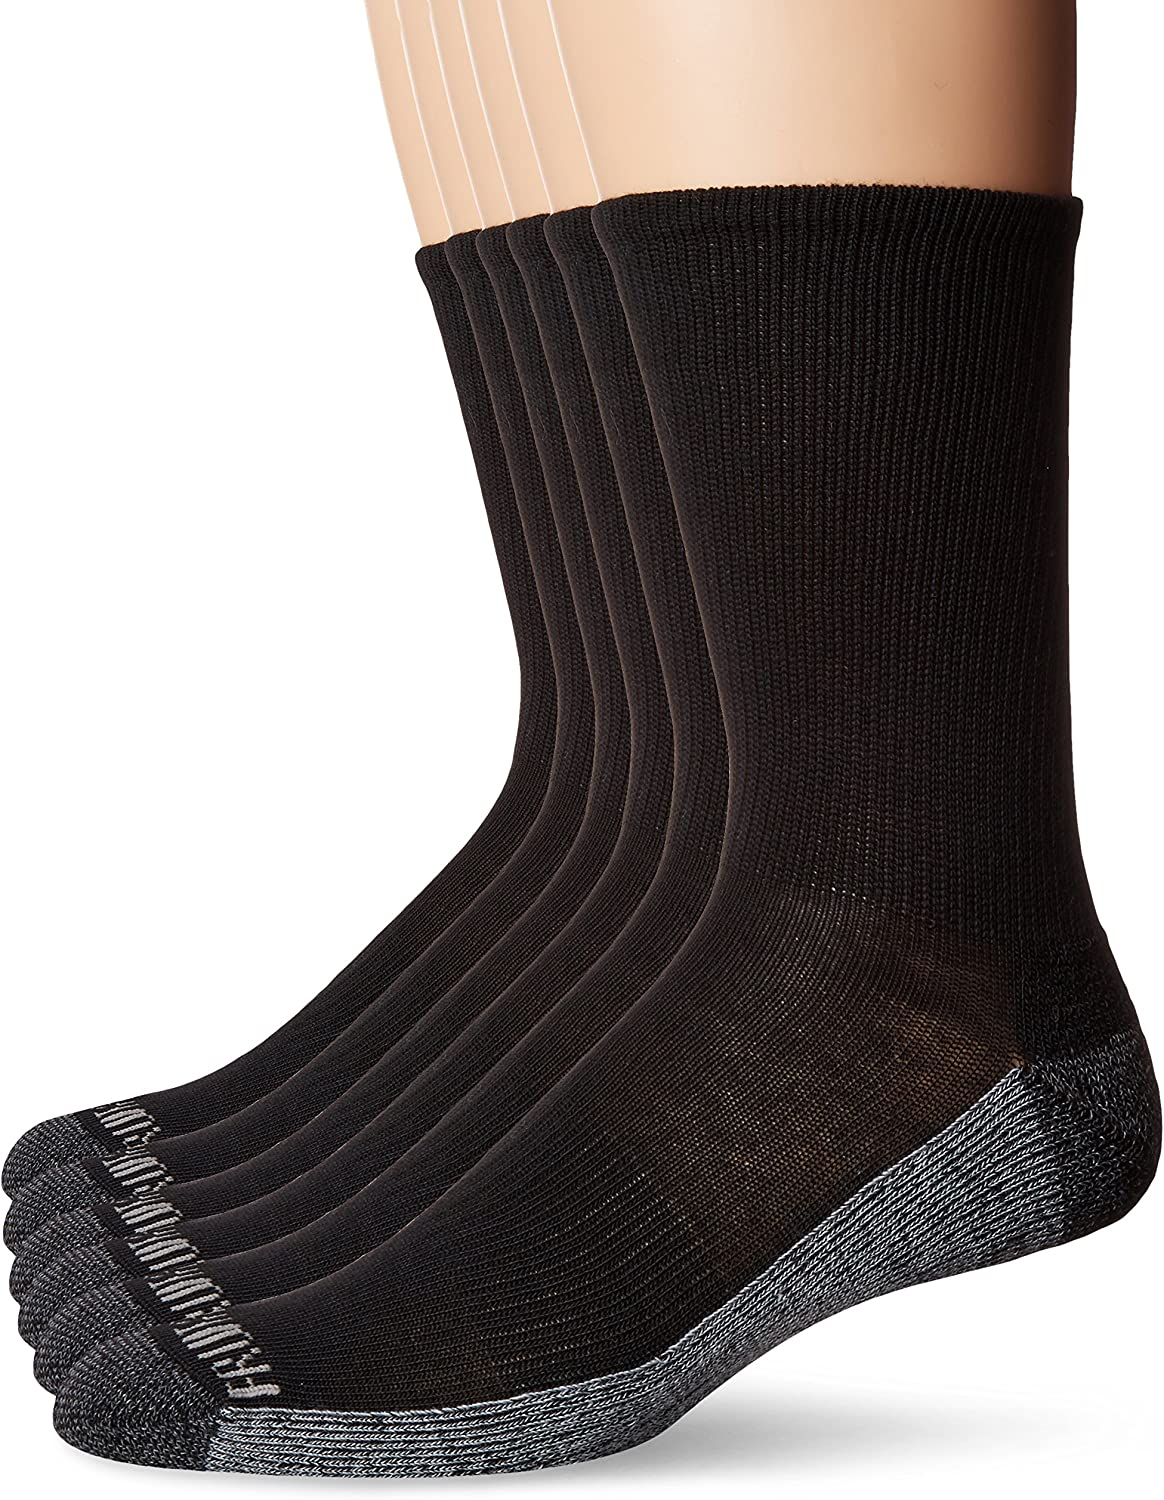 Fruit of the Loom Men's Essential 6 Pack Casual Crew Socks | Arch Support | Black & White, Black, Shoe Size: 6-12 at  Men's Clothing store